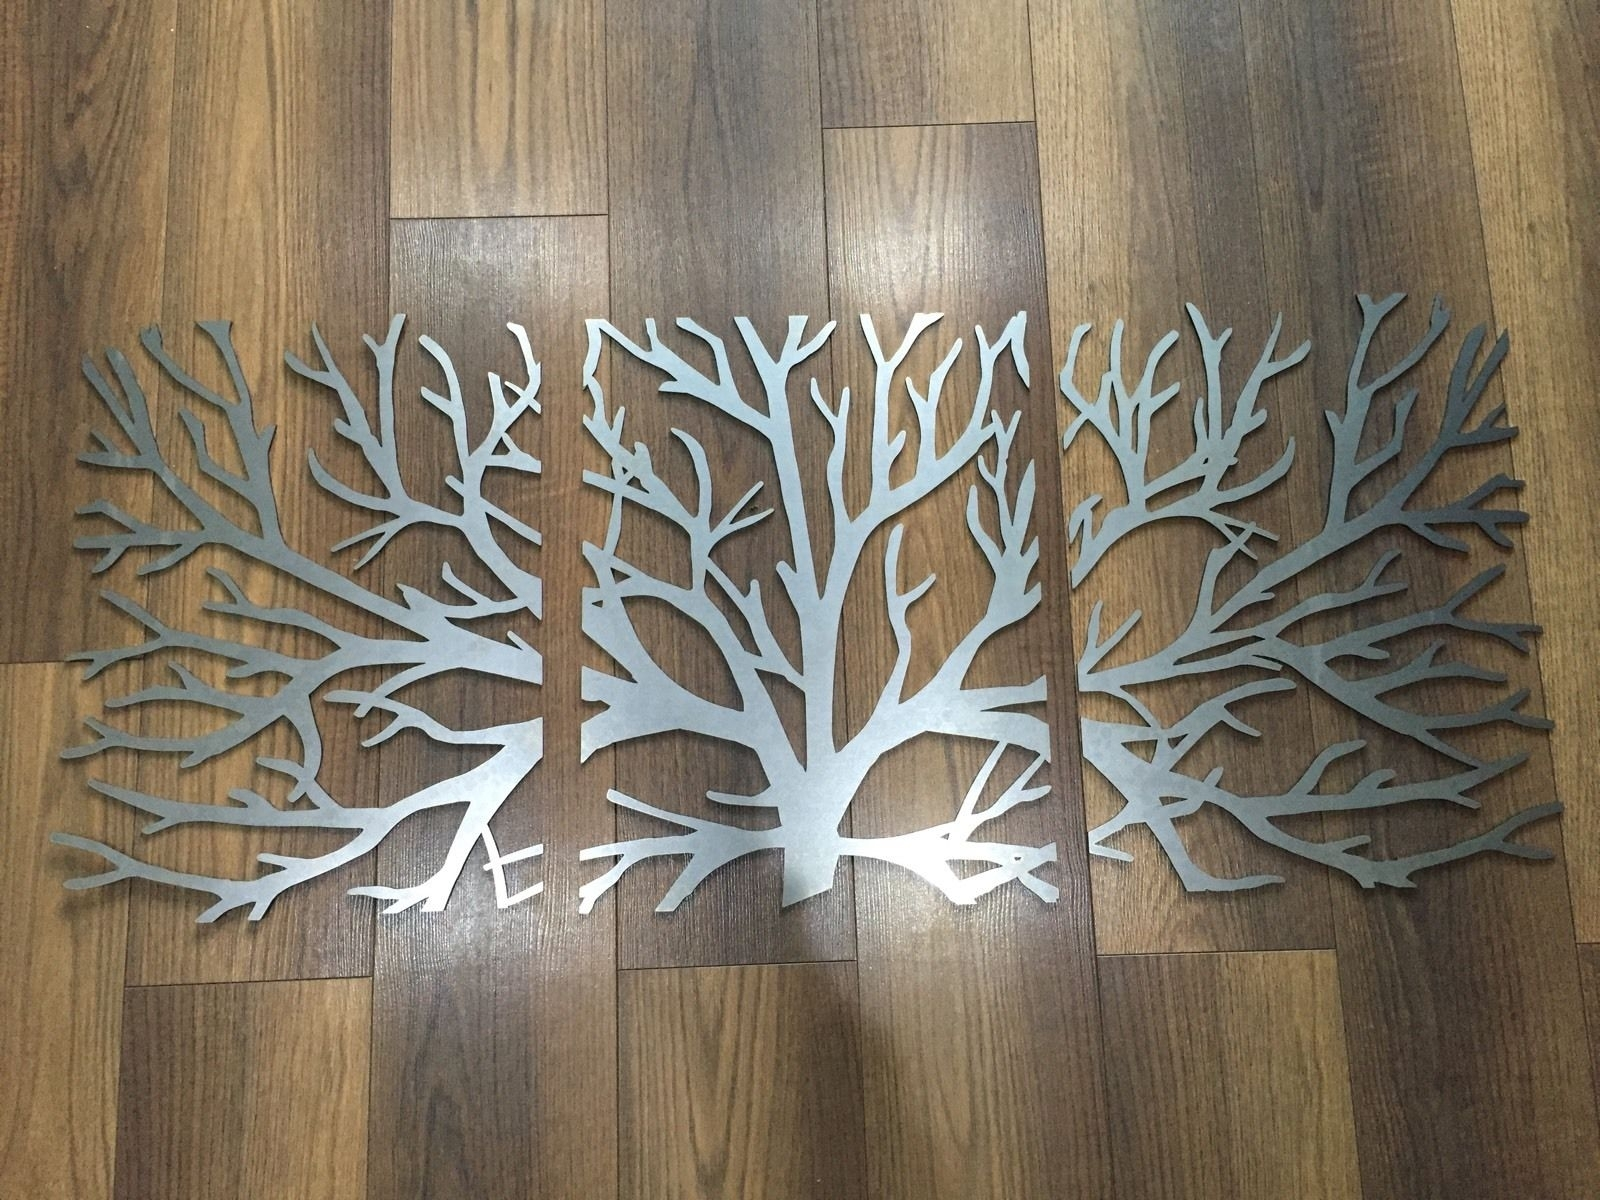 Wall Art Designs: Metal Wall Art Decor And Sculptures Wooden Metal Within Most Recent Abstract Garden Wall Art (View 18 of 20)